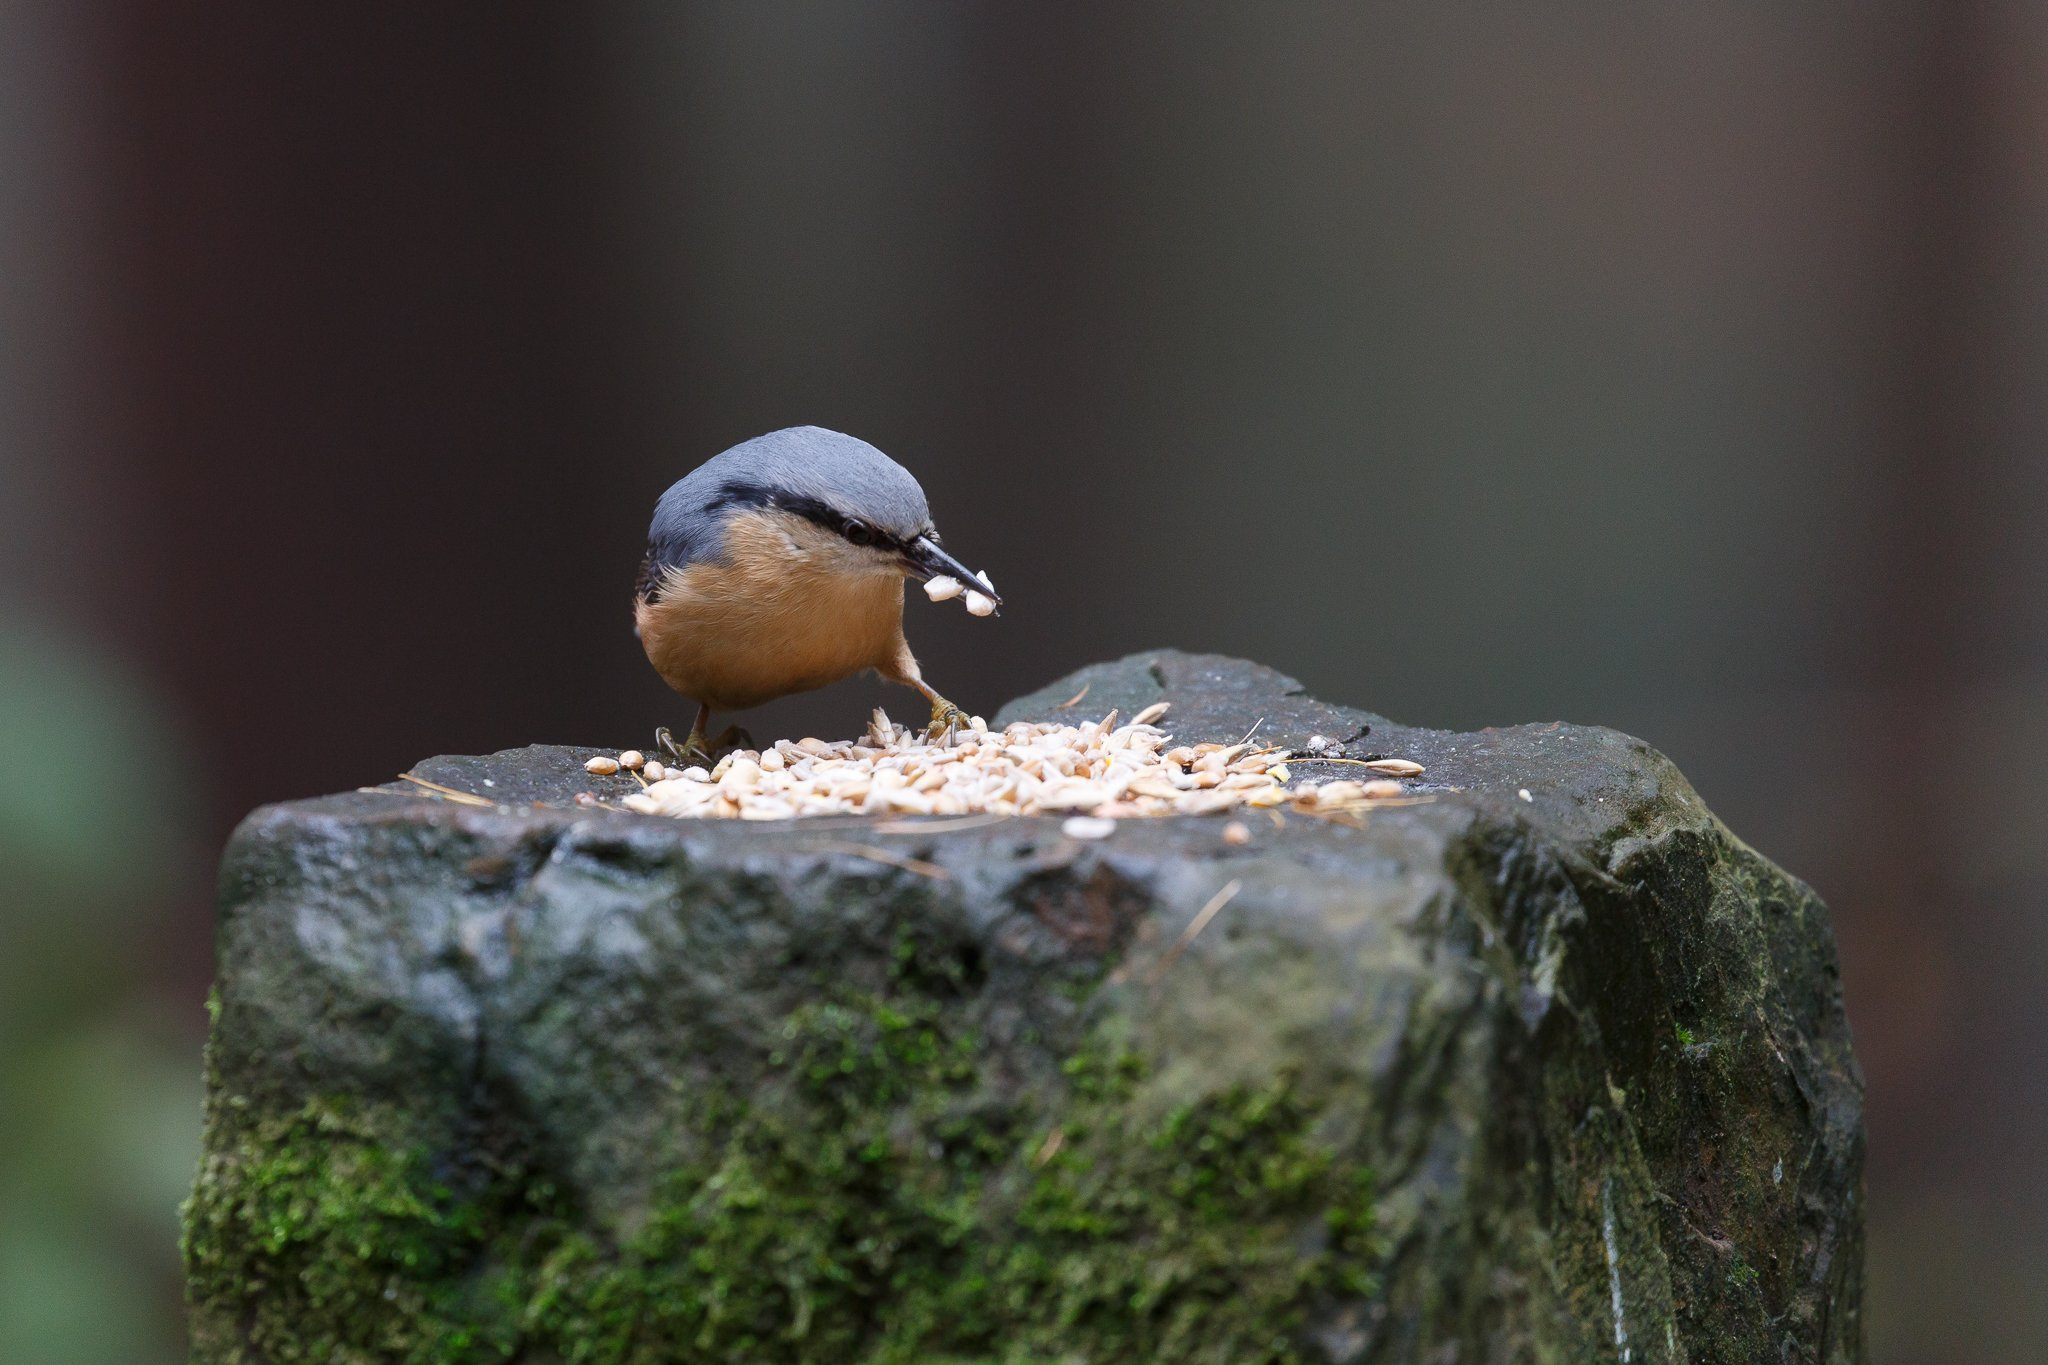 Nuthatch bird eating seeds